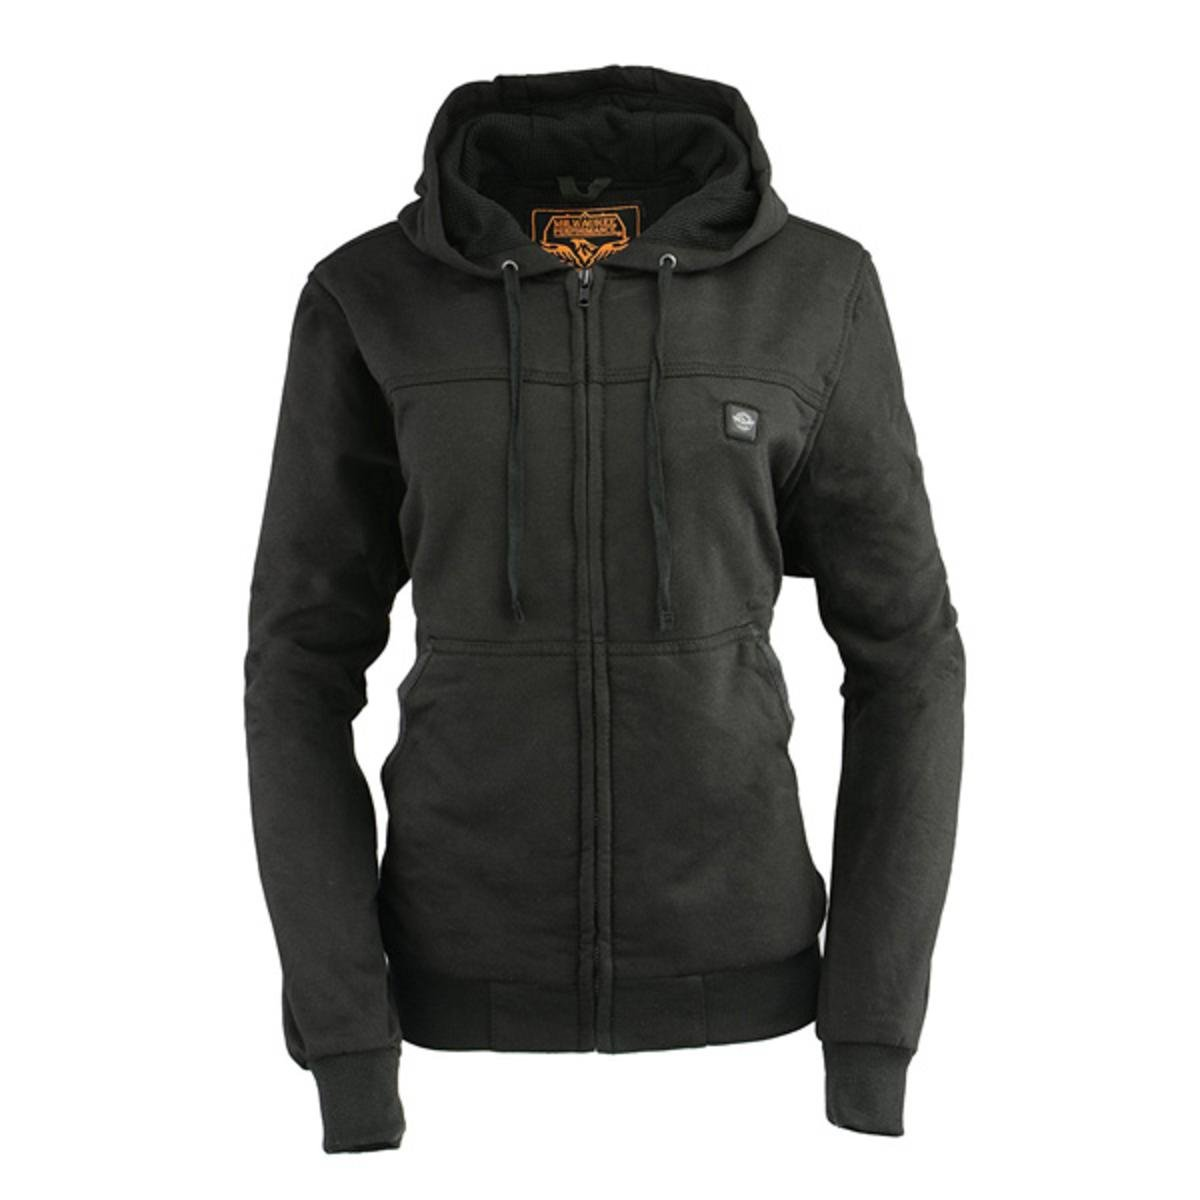 Womens Heated Clothing >> Milwaukee Performance 12v Women S Heated Hoodie With Front Back